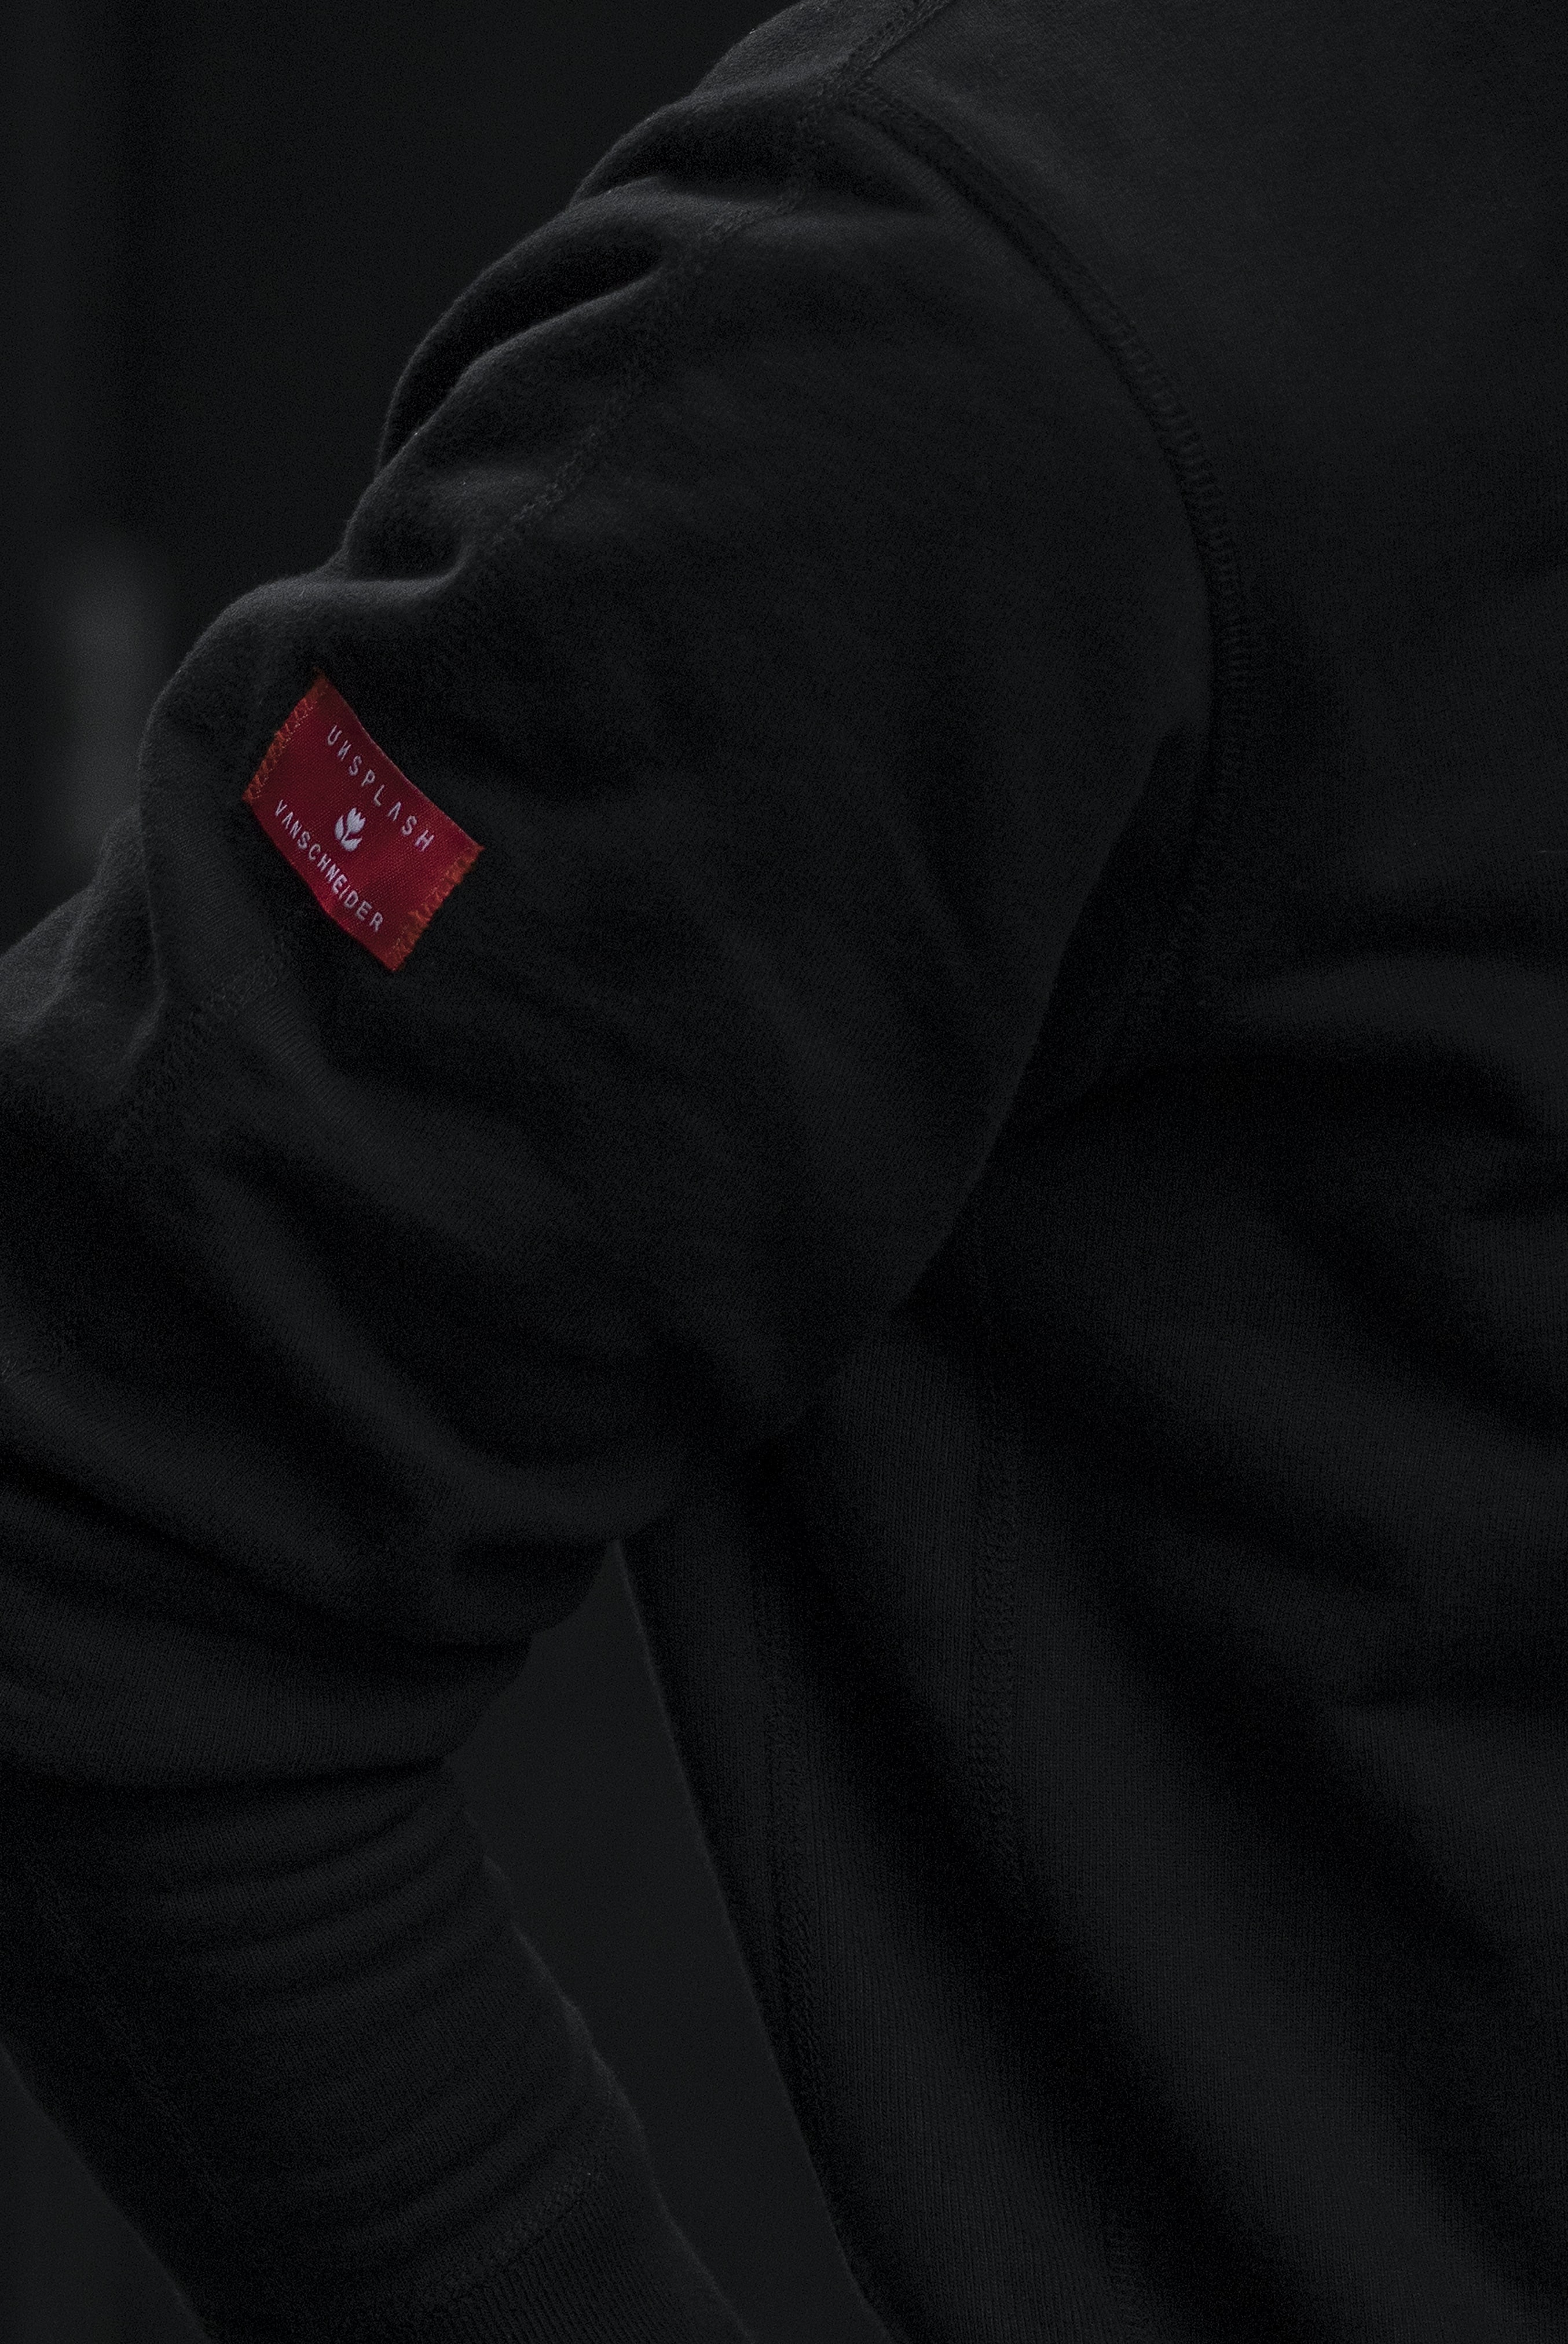 A person wears a black coat with a red Unsplash tag